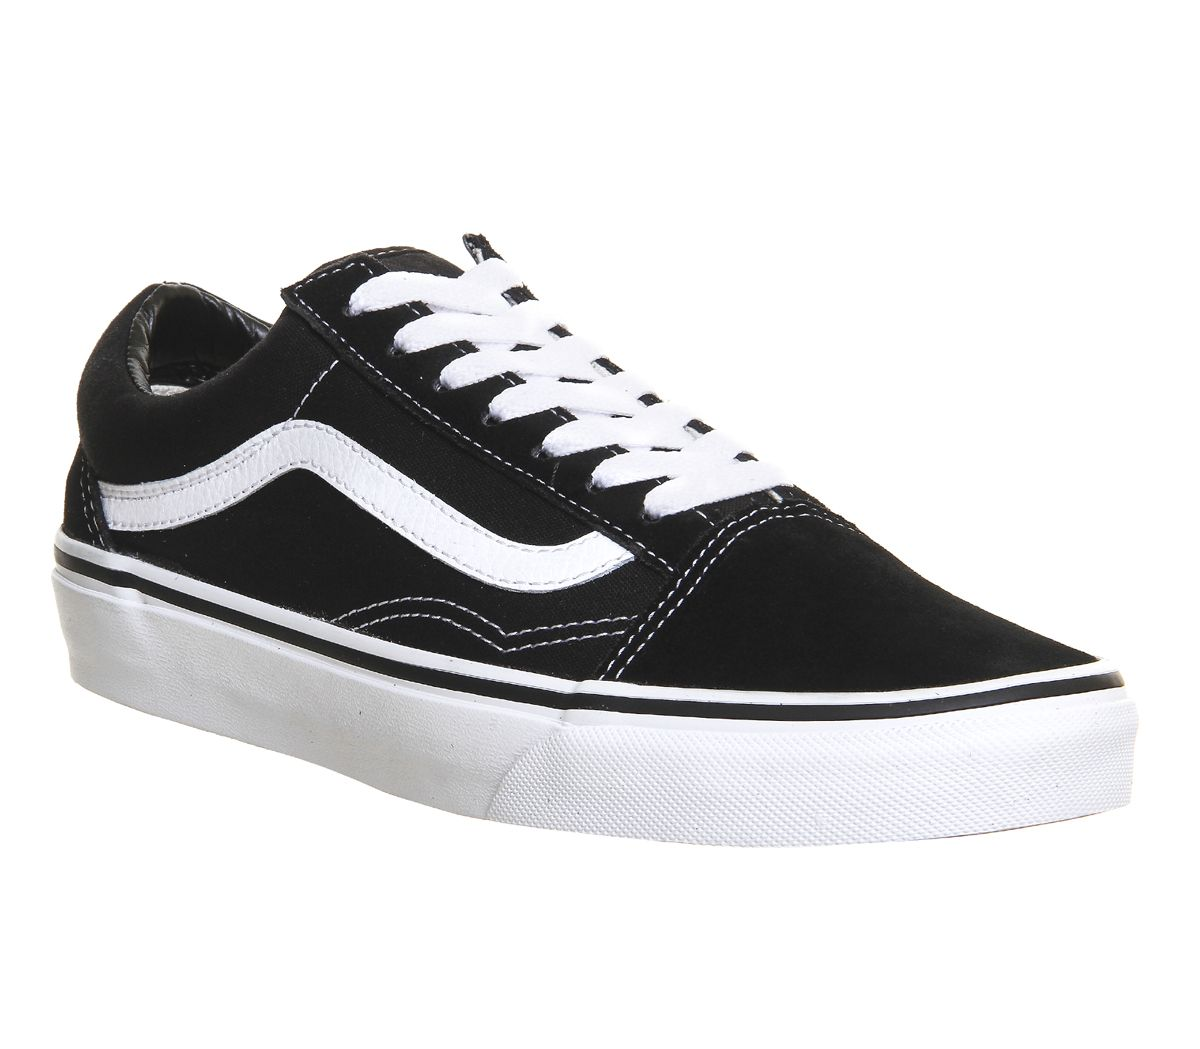 e646050f239b7a Vans Old Skool Trainers Black - Unisex Sports